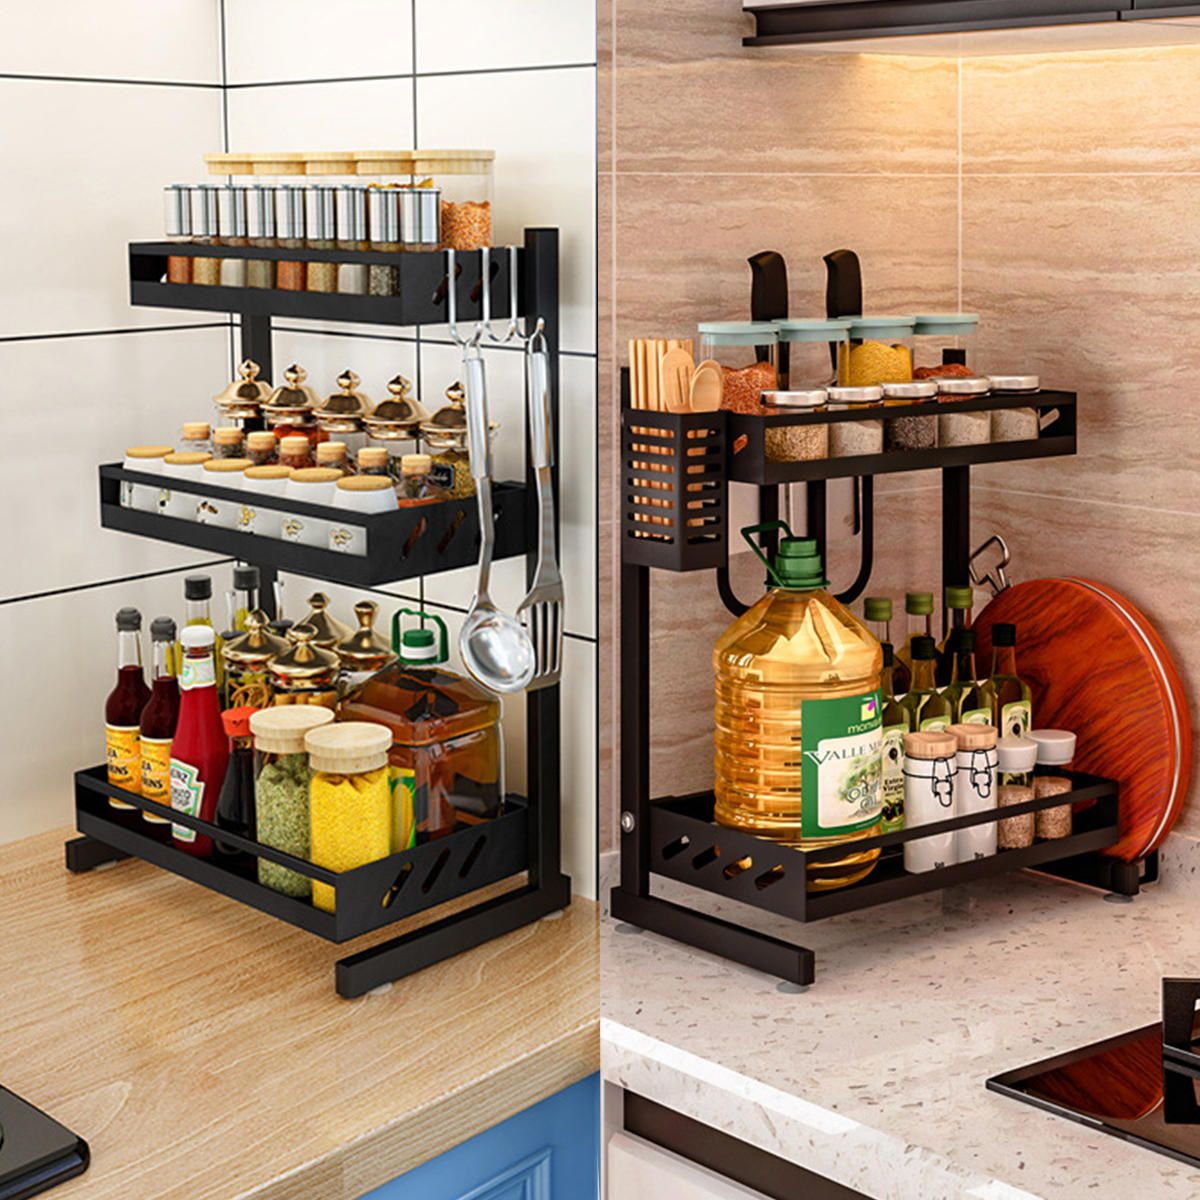 SYB US$60.58~71.58 Multi-functional Storage kitchen Rack Microwave Oven Shelving Unit Bathroom Storage Shelf Kitchen Storage Container